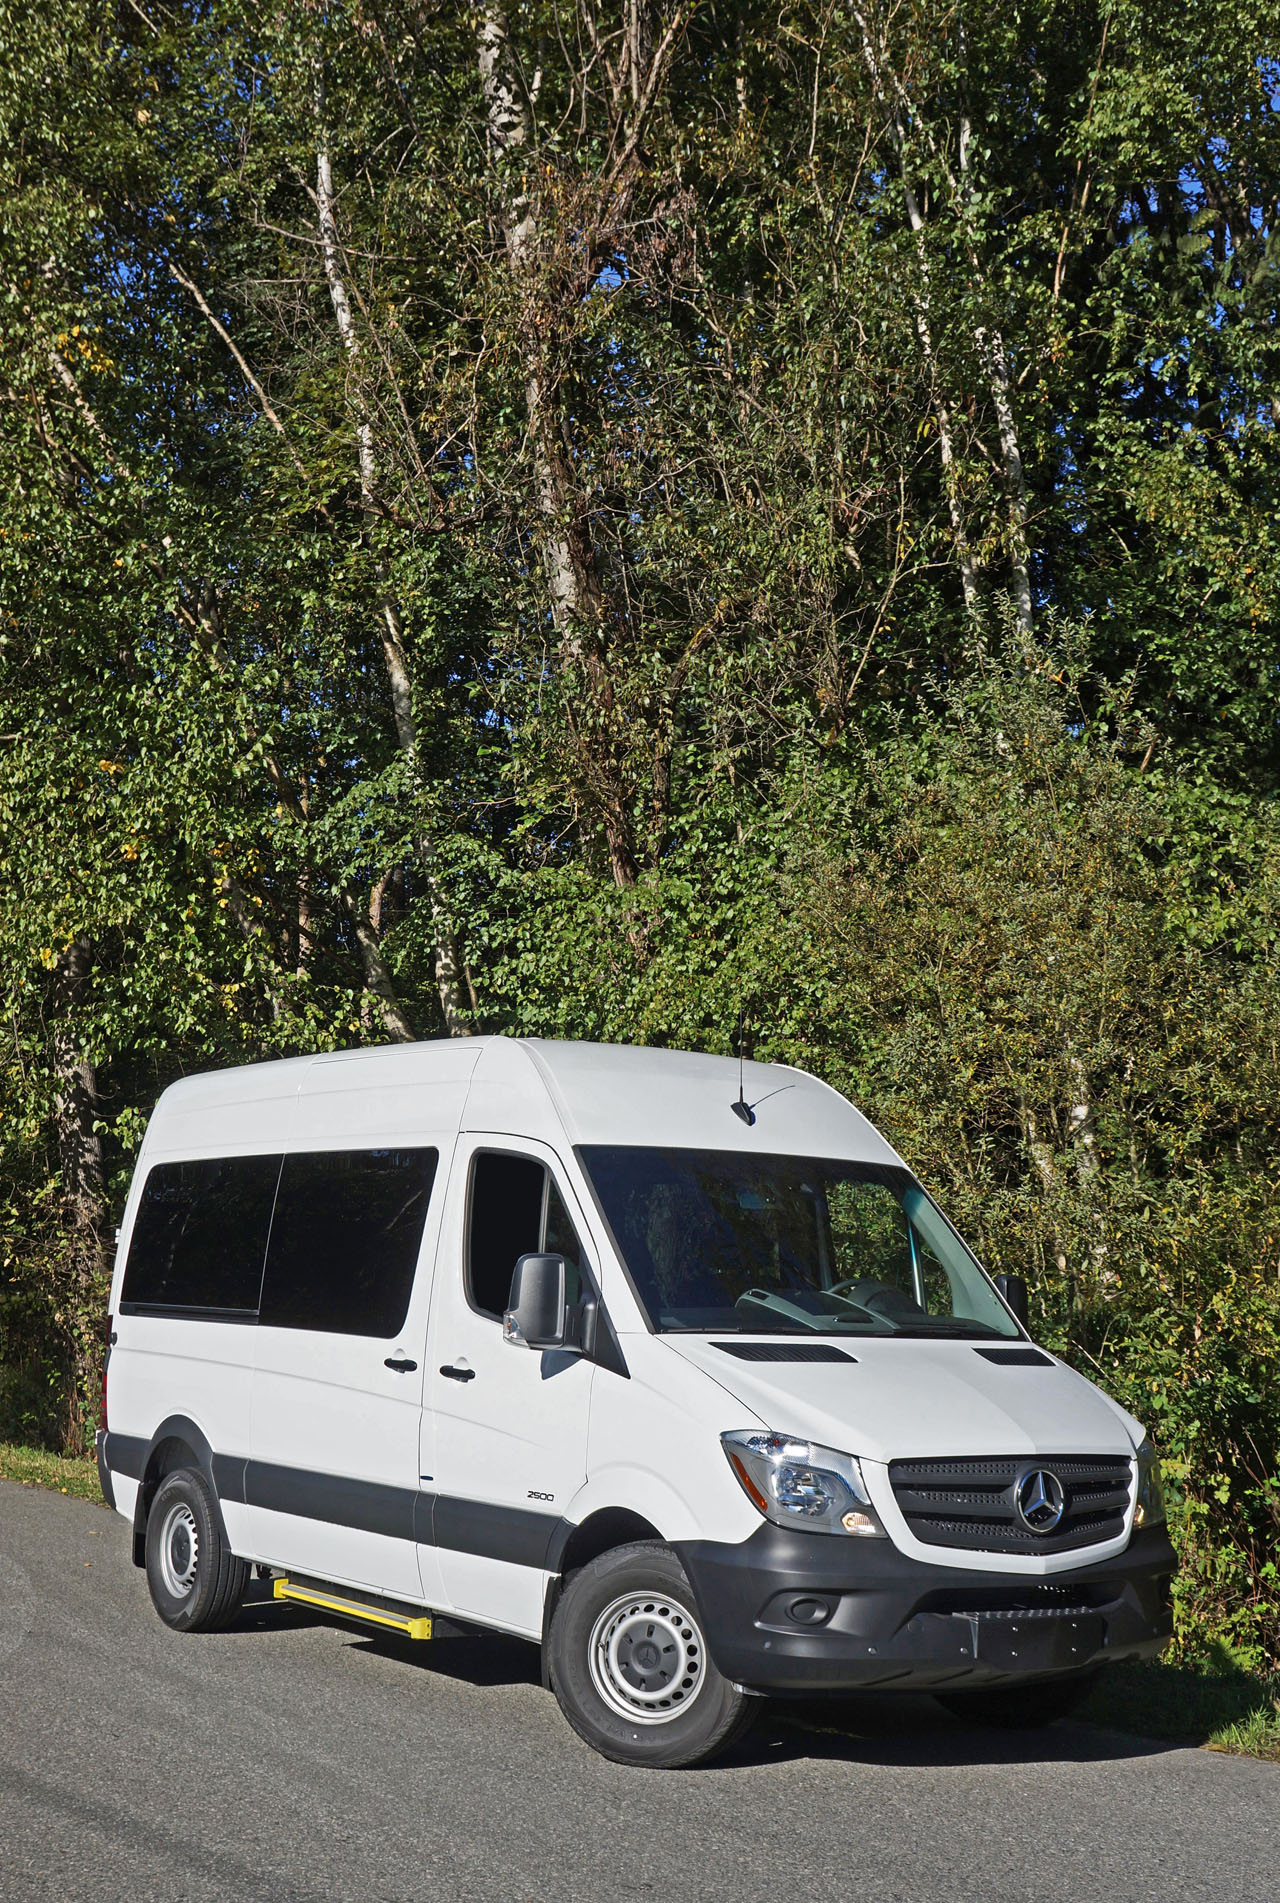 2016 Mercedes Benz Sprinter 2500 Passenger Van Road Test Review Toyota Shows The Iroad A Fullyenclosed Tilting Electric Three 76